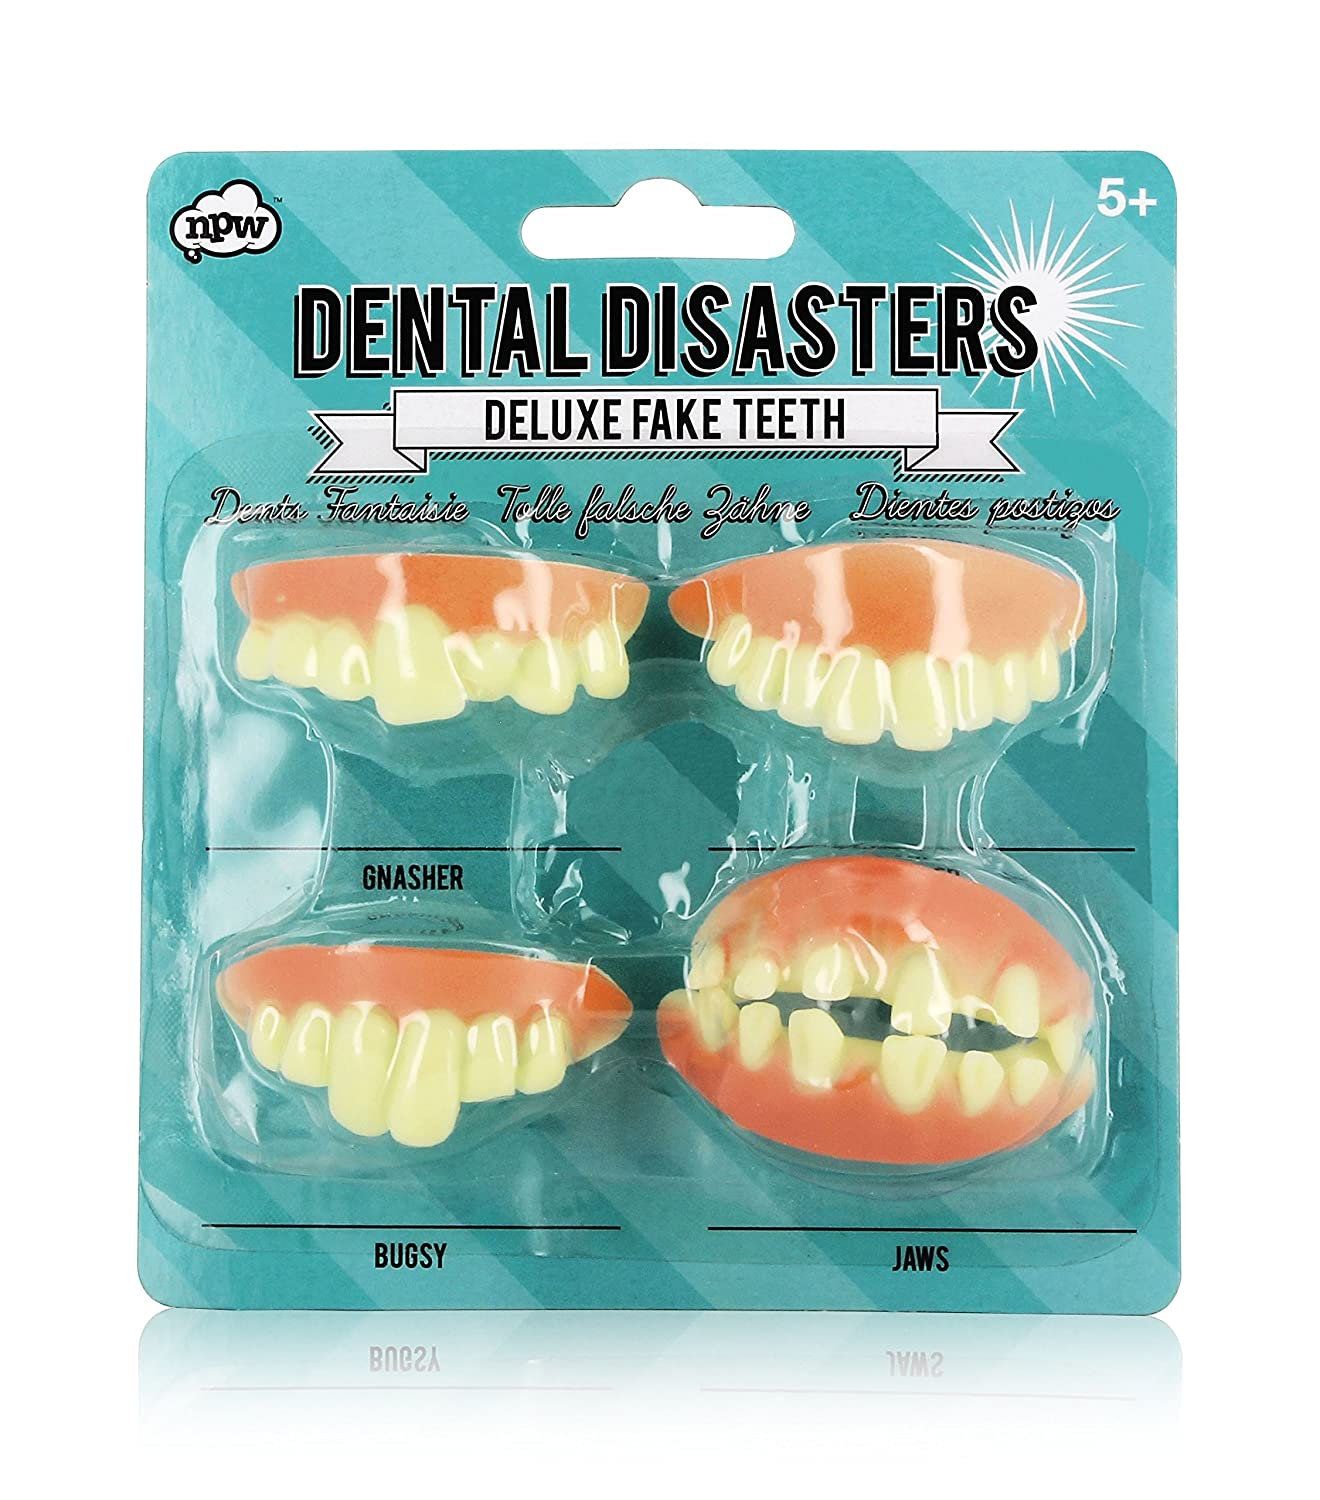 NPW-USA W7299 Dental Disasters Fake Teeth, Dental Disasters